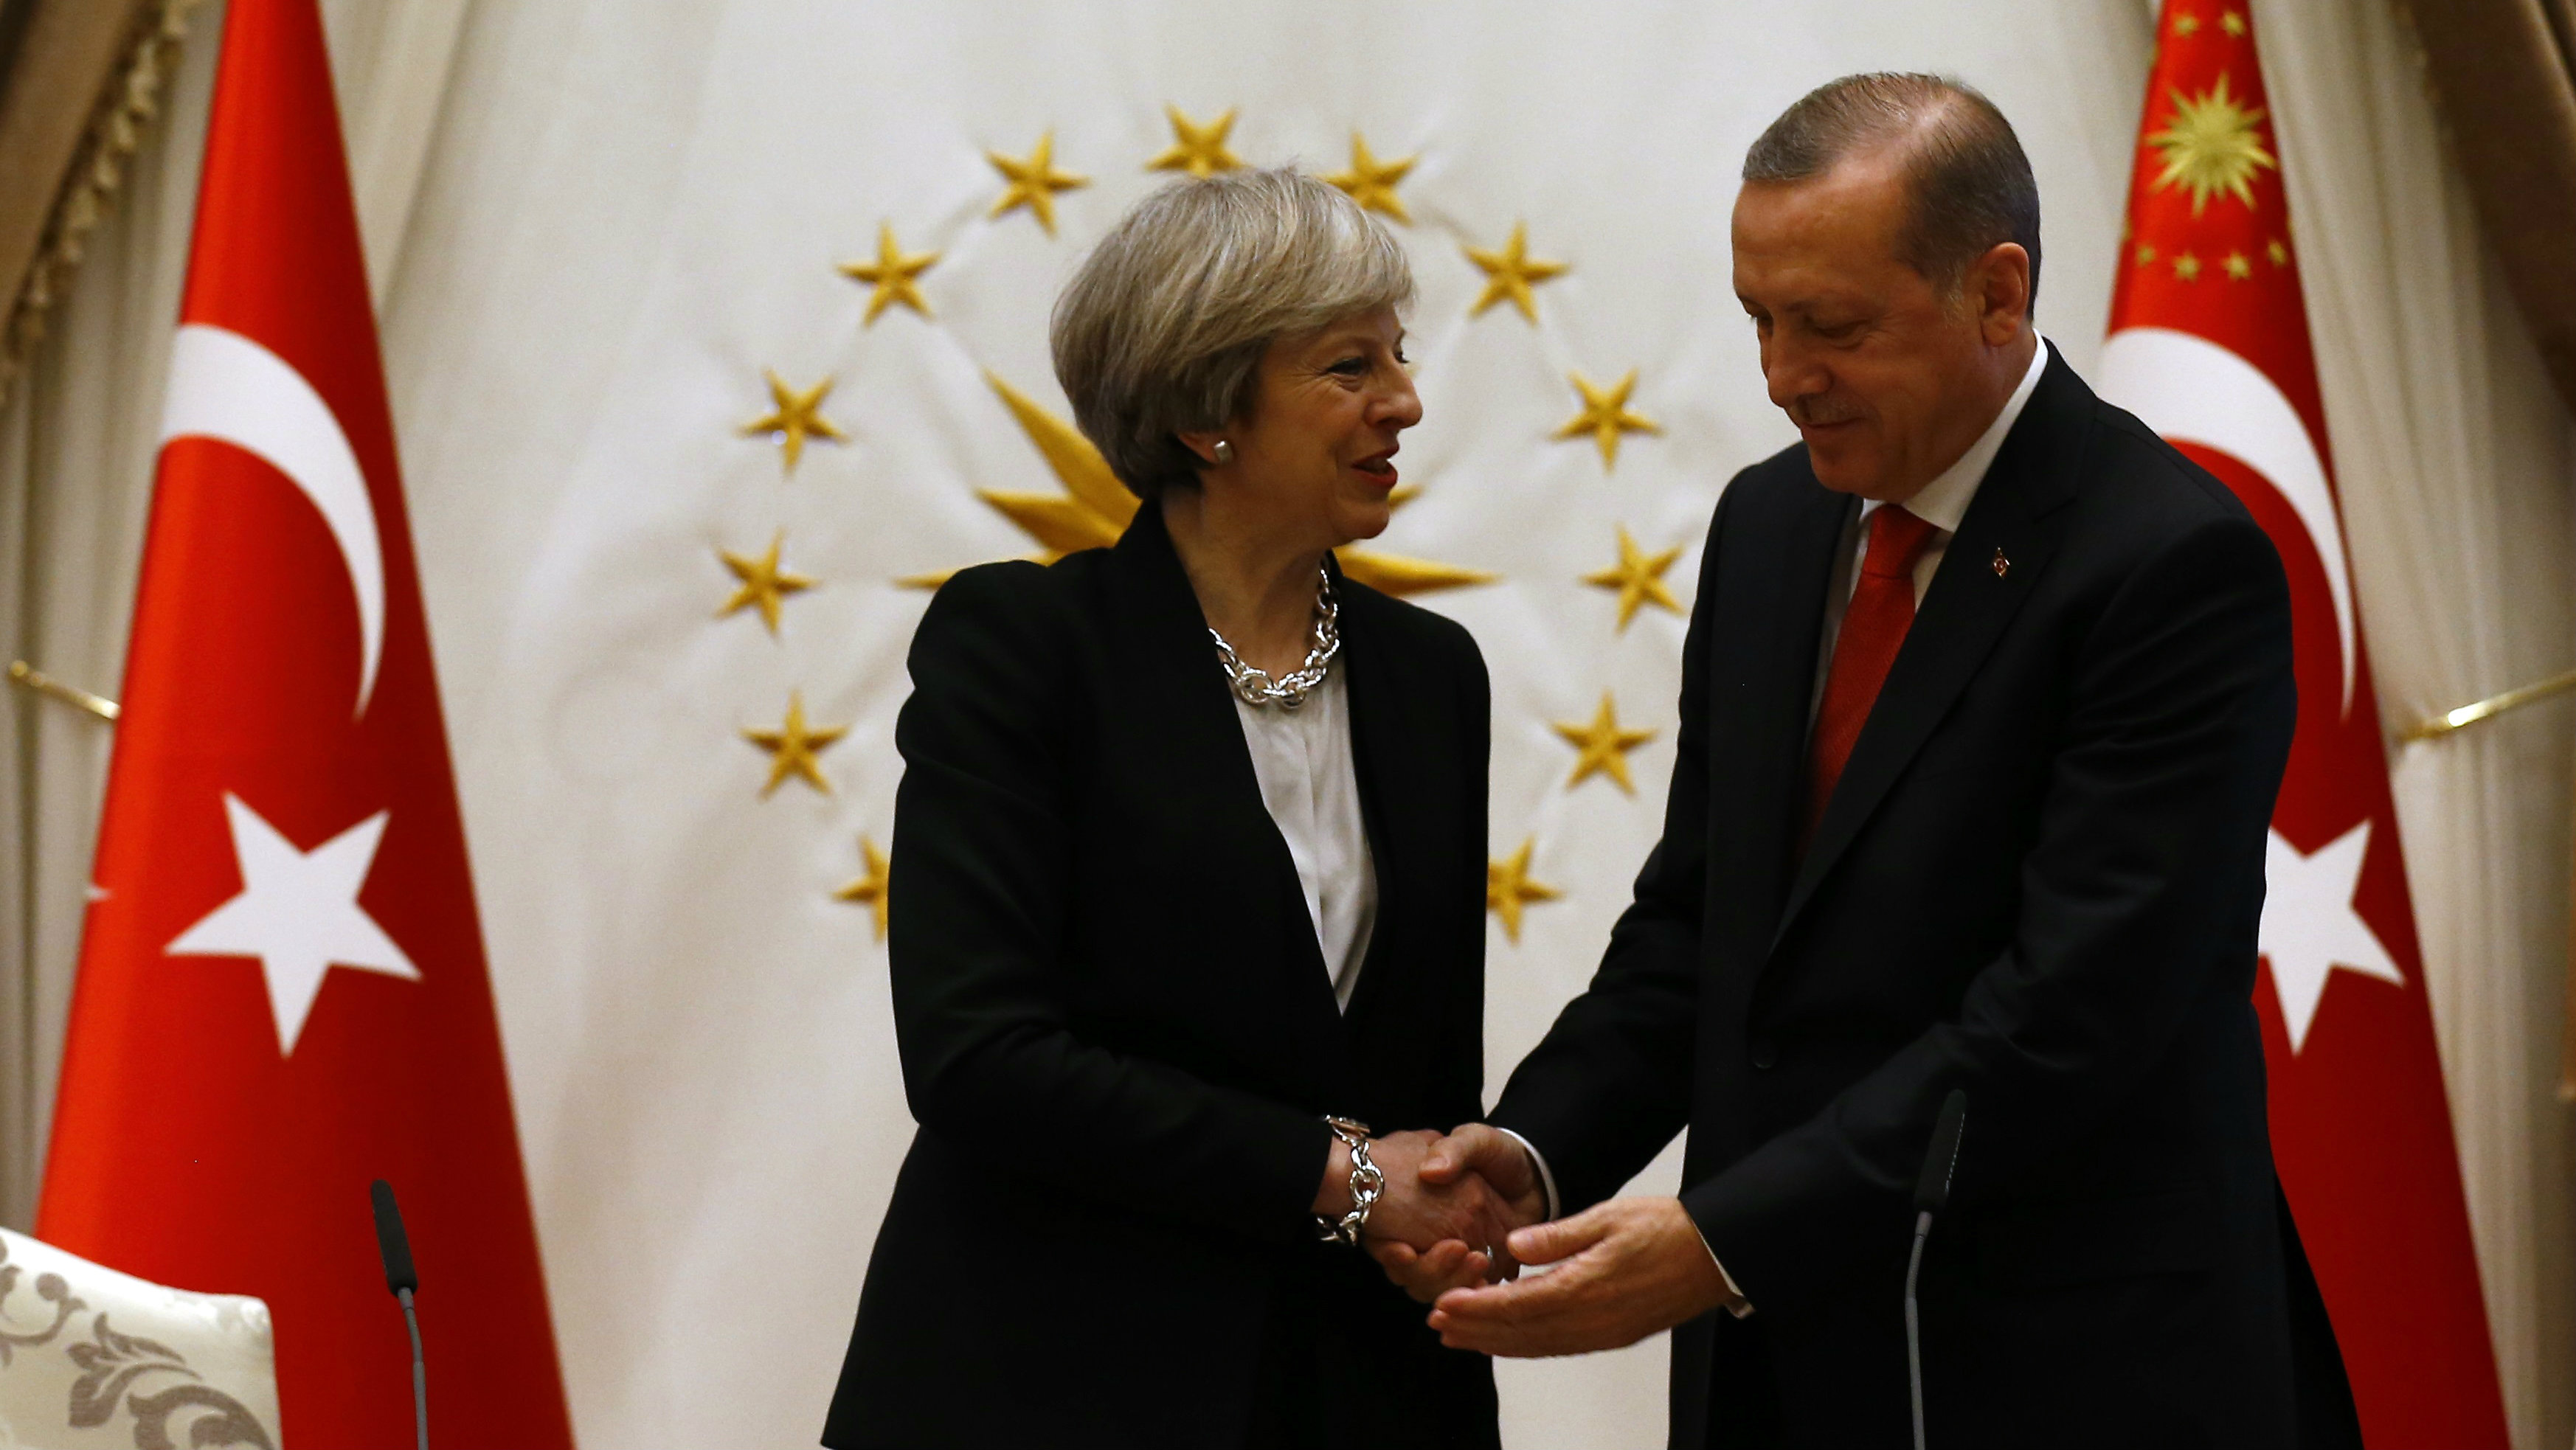 British Prime Minister Theresa May with Turkish President Recep Tayyip Erdogan